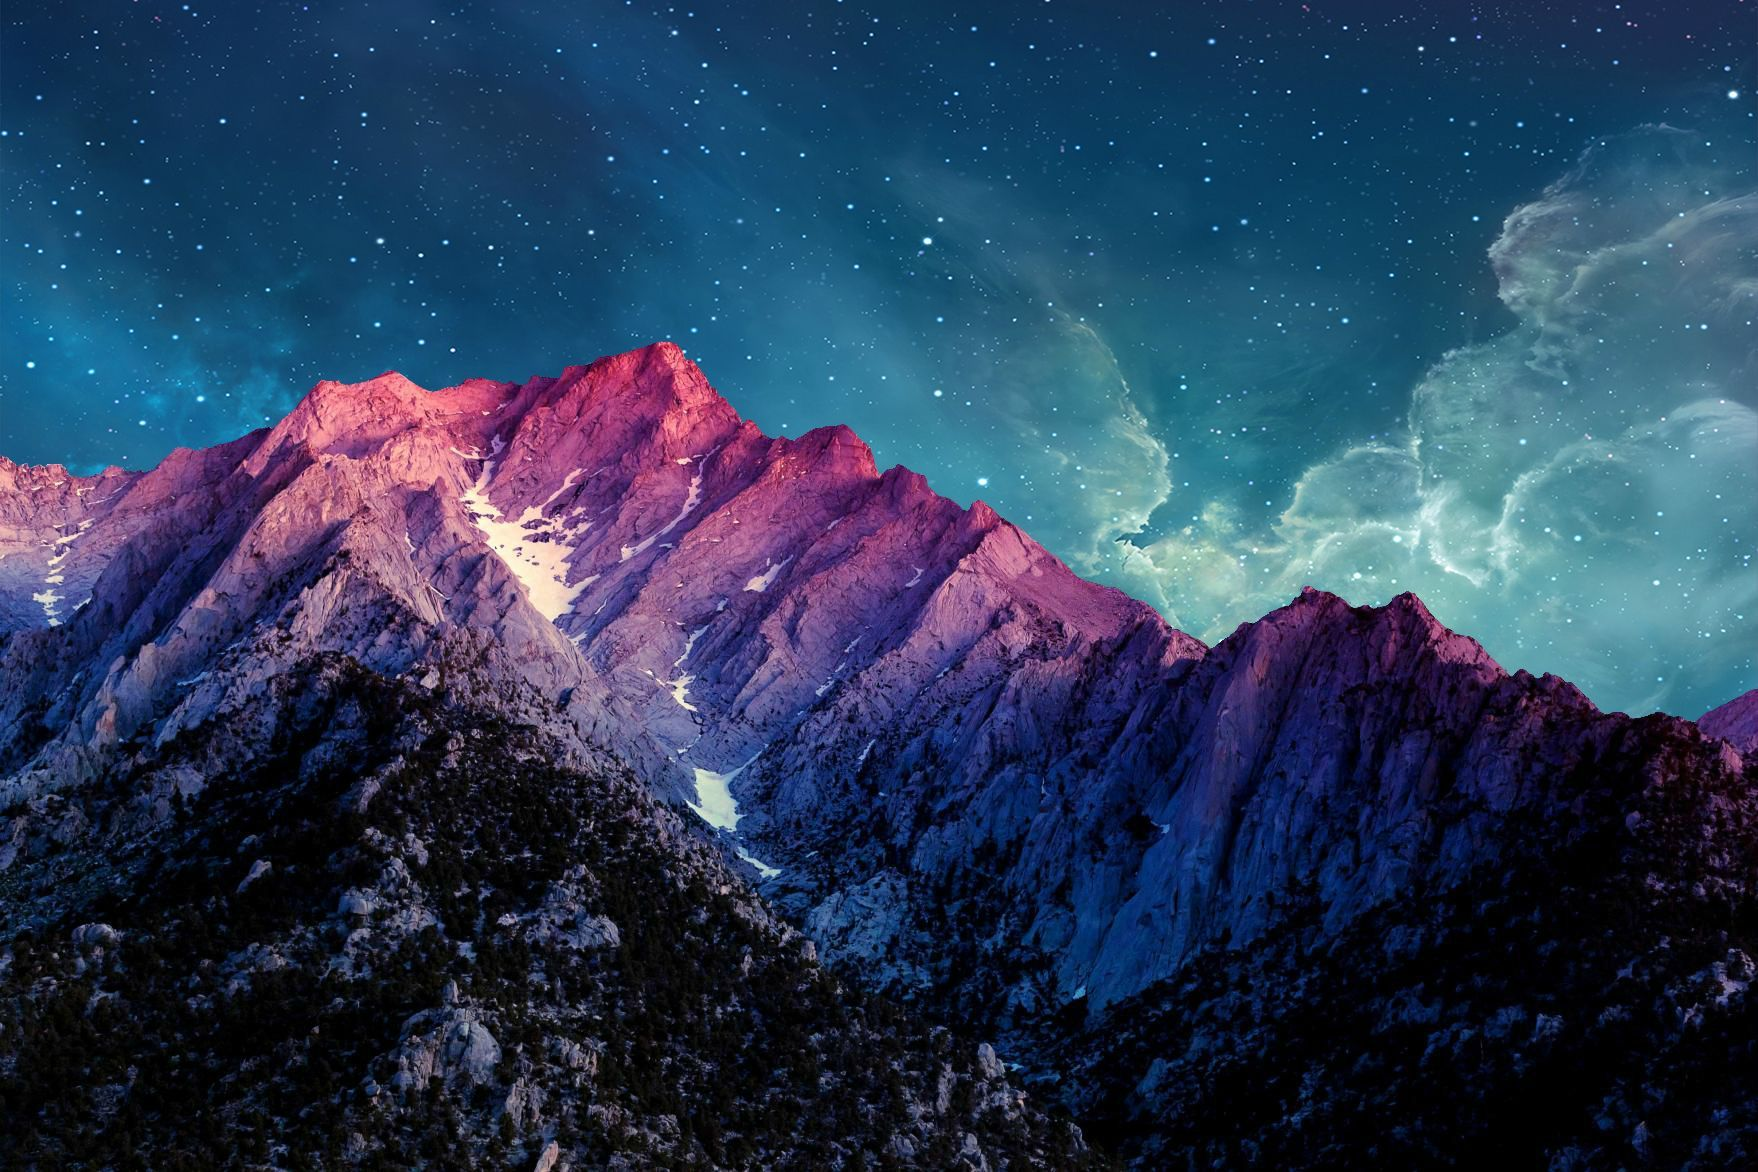 Starry Mountains 1758 X 1172 R Wallpapers Landscape Wallpaper Mountain Wallpaper Android Wallpaper